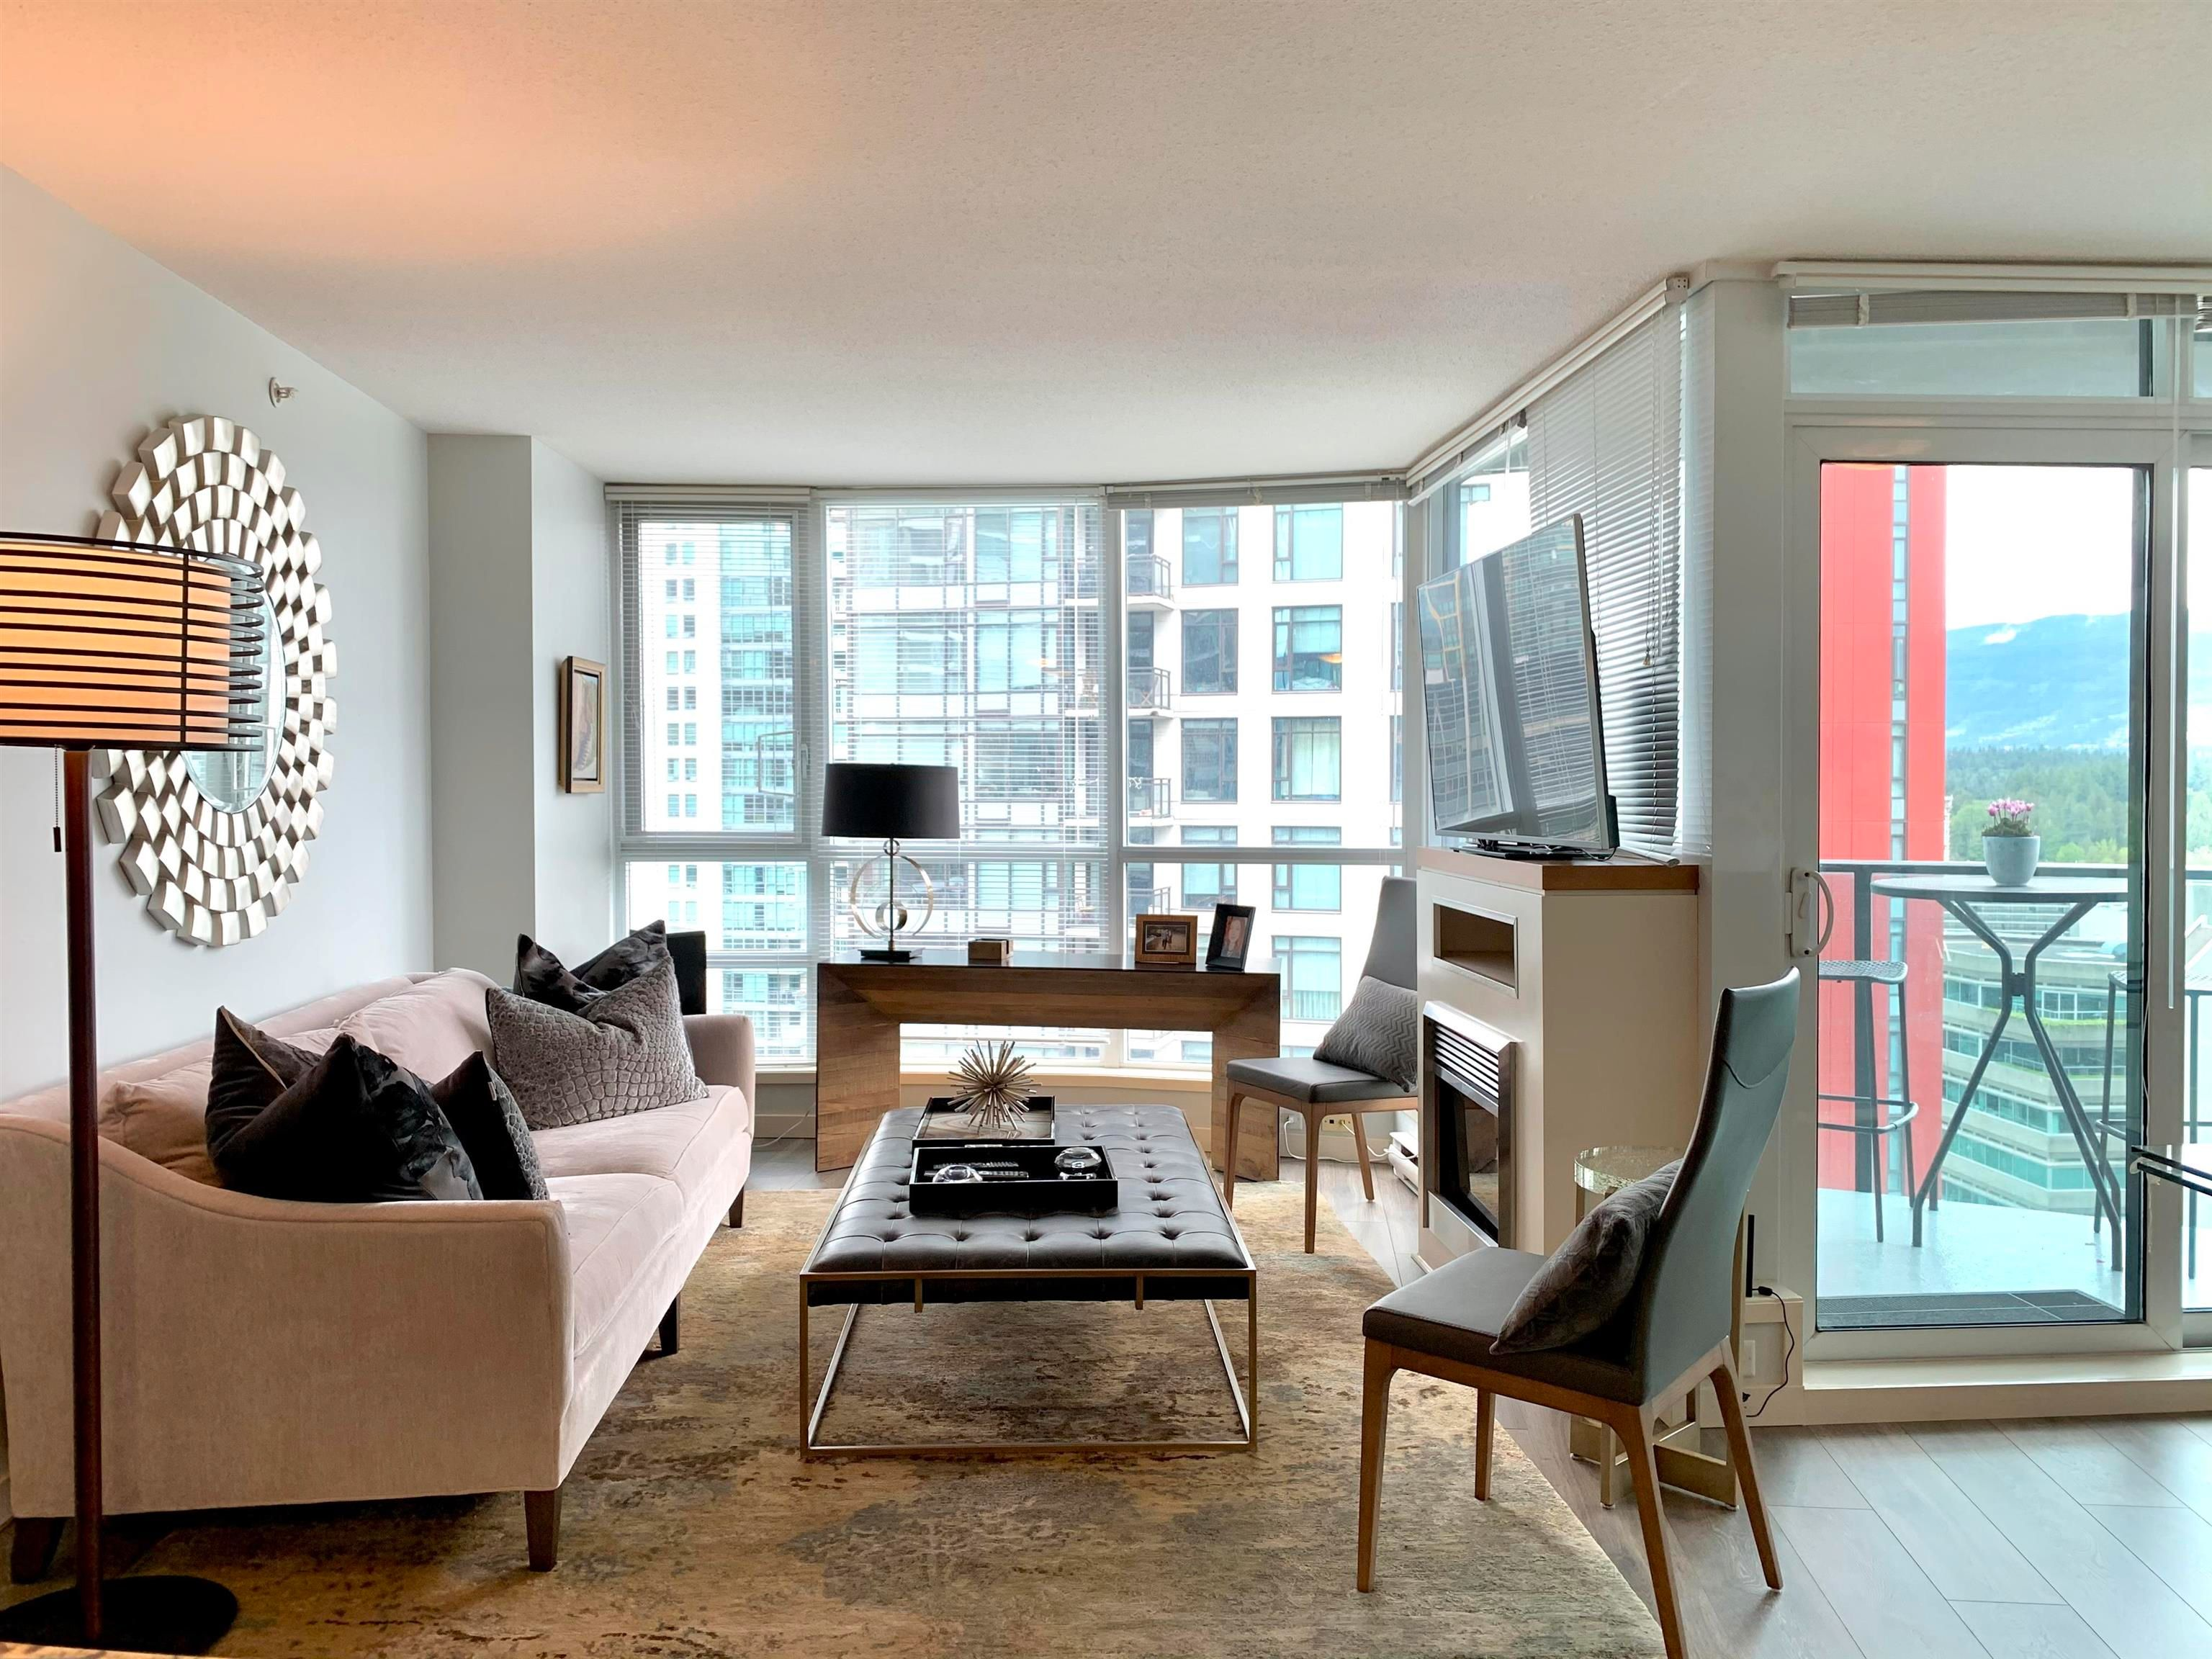 """Main Photo: 1701 1189 MELVILLE Street in Vancouver: Coal Harbour Condo for sale in """"THE MELVILLE"""" (Vancouver West)  : MLS®# R2617274"""